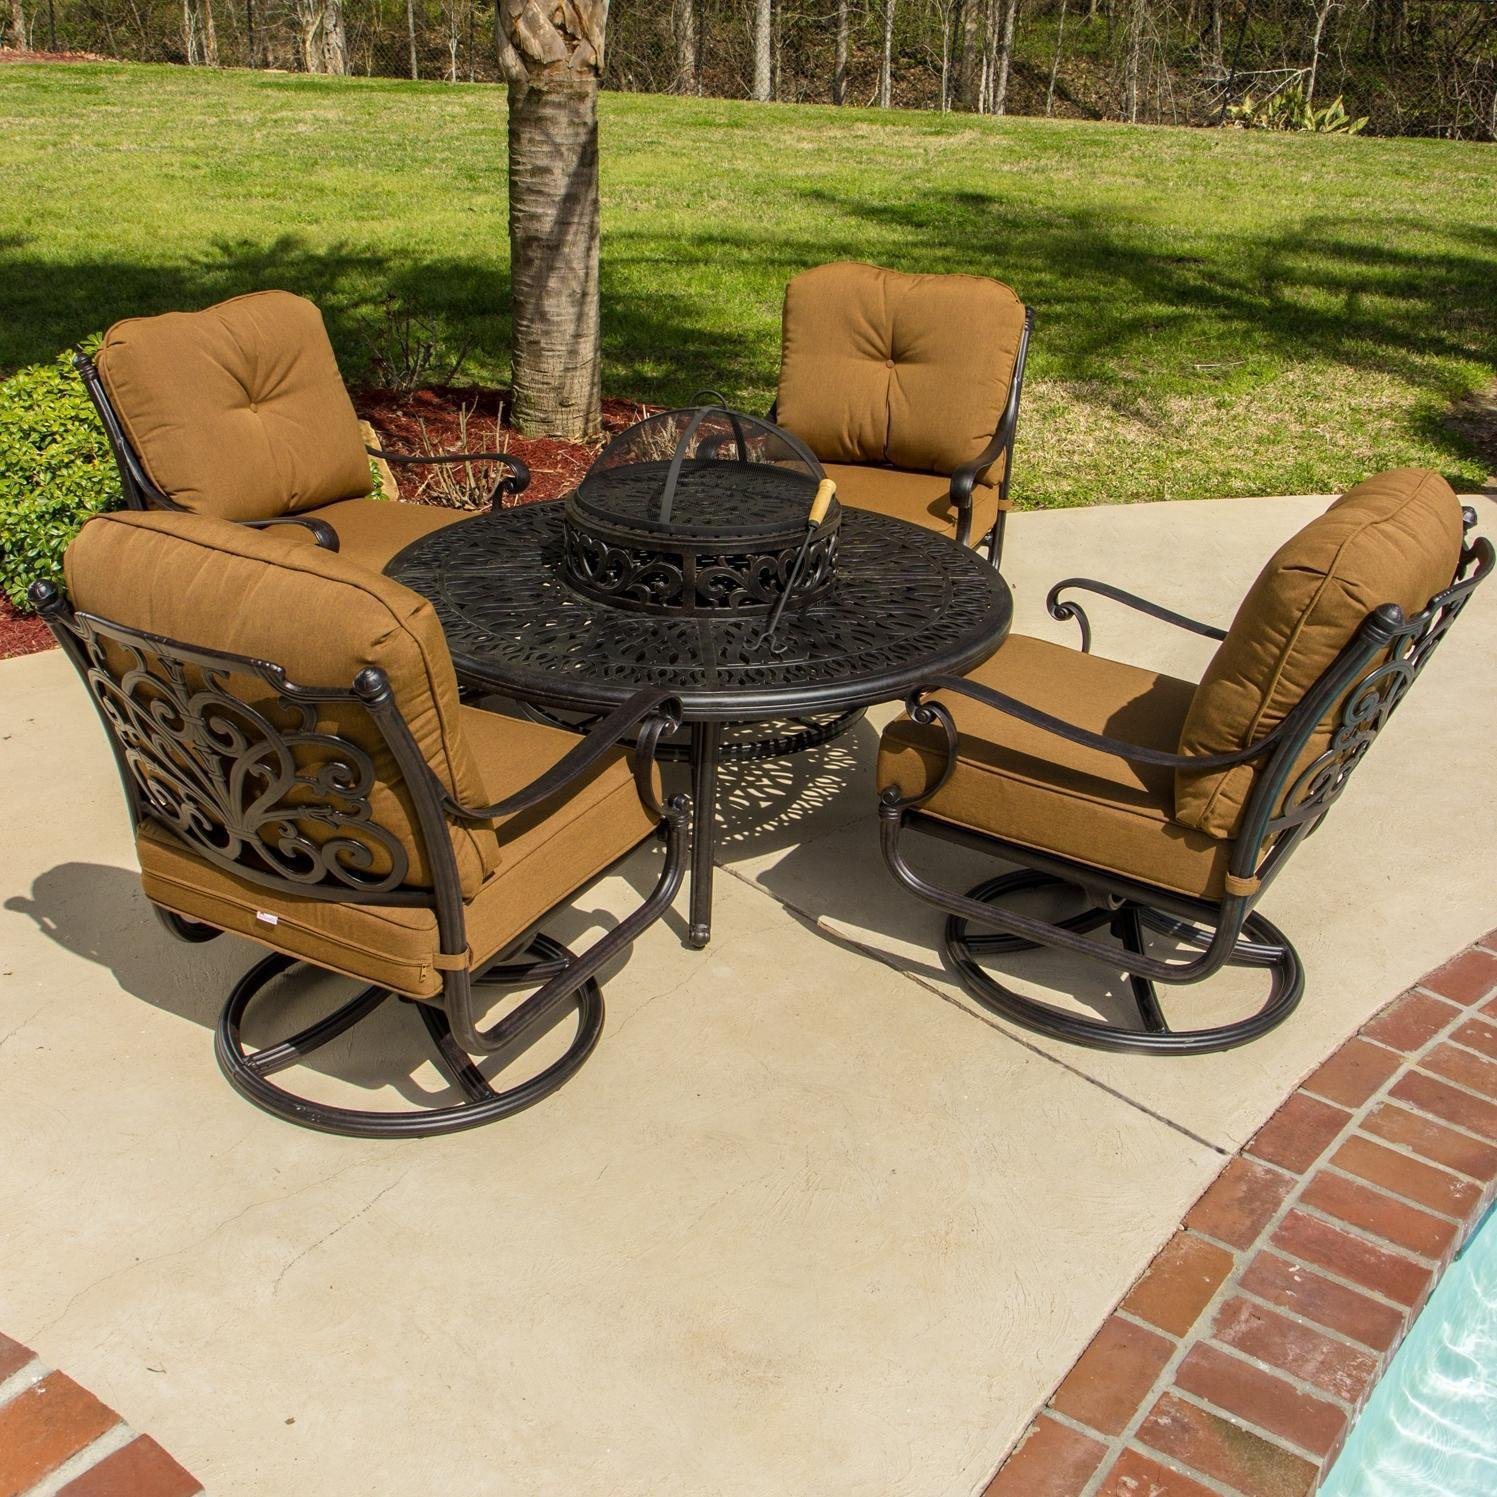 Lakeview Outdoor Designs Evangeline 4 Person Patio Deep Seating with BBQ/Fire Pit Table and Ice Bucket Insert with Swivel Rockers, Antique Bronze